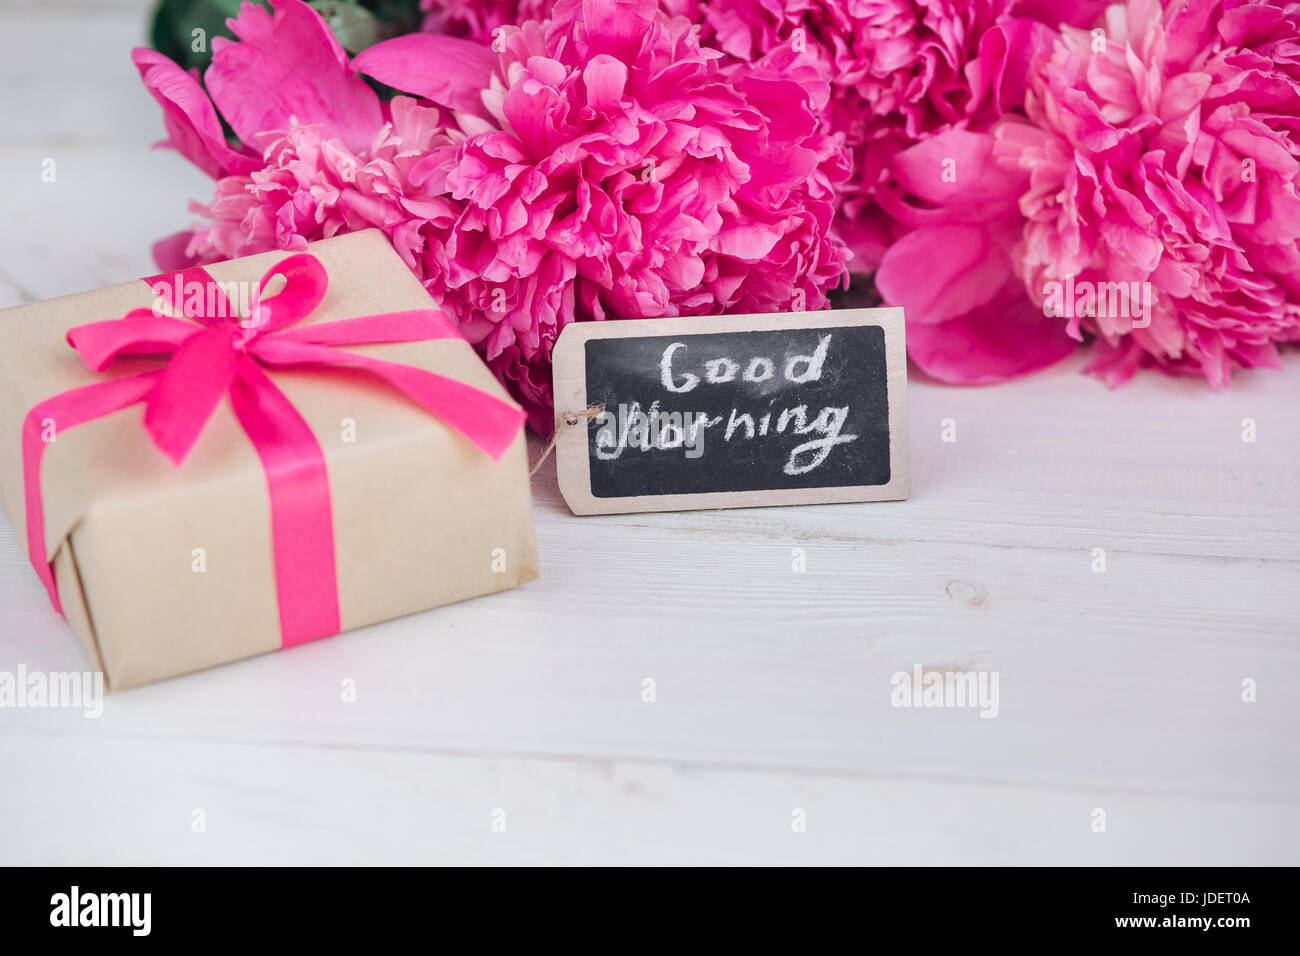 Pink Peony Flowersgift Box And Notes Good Morning On White Rustic